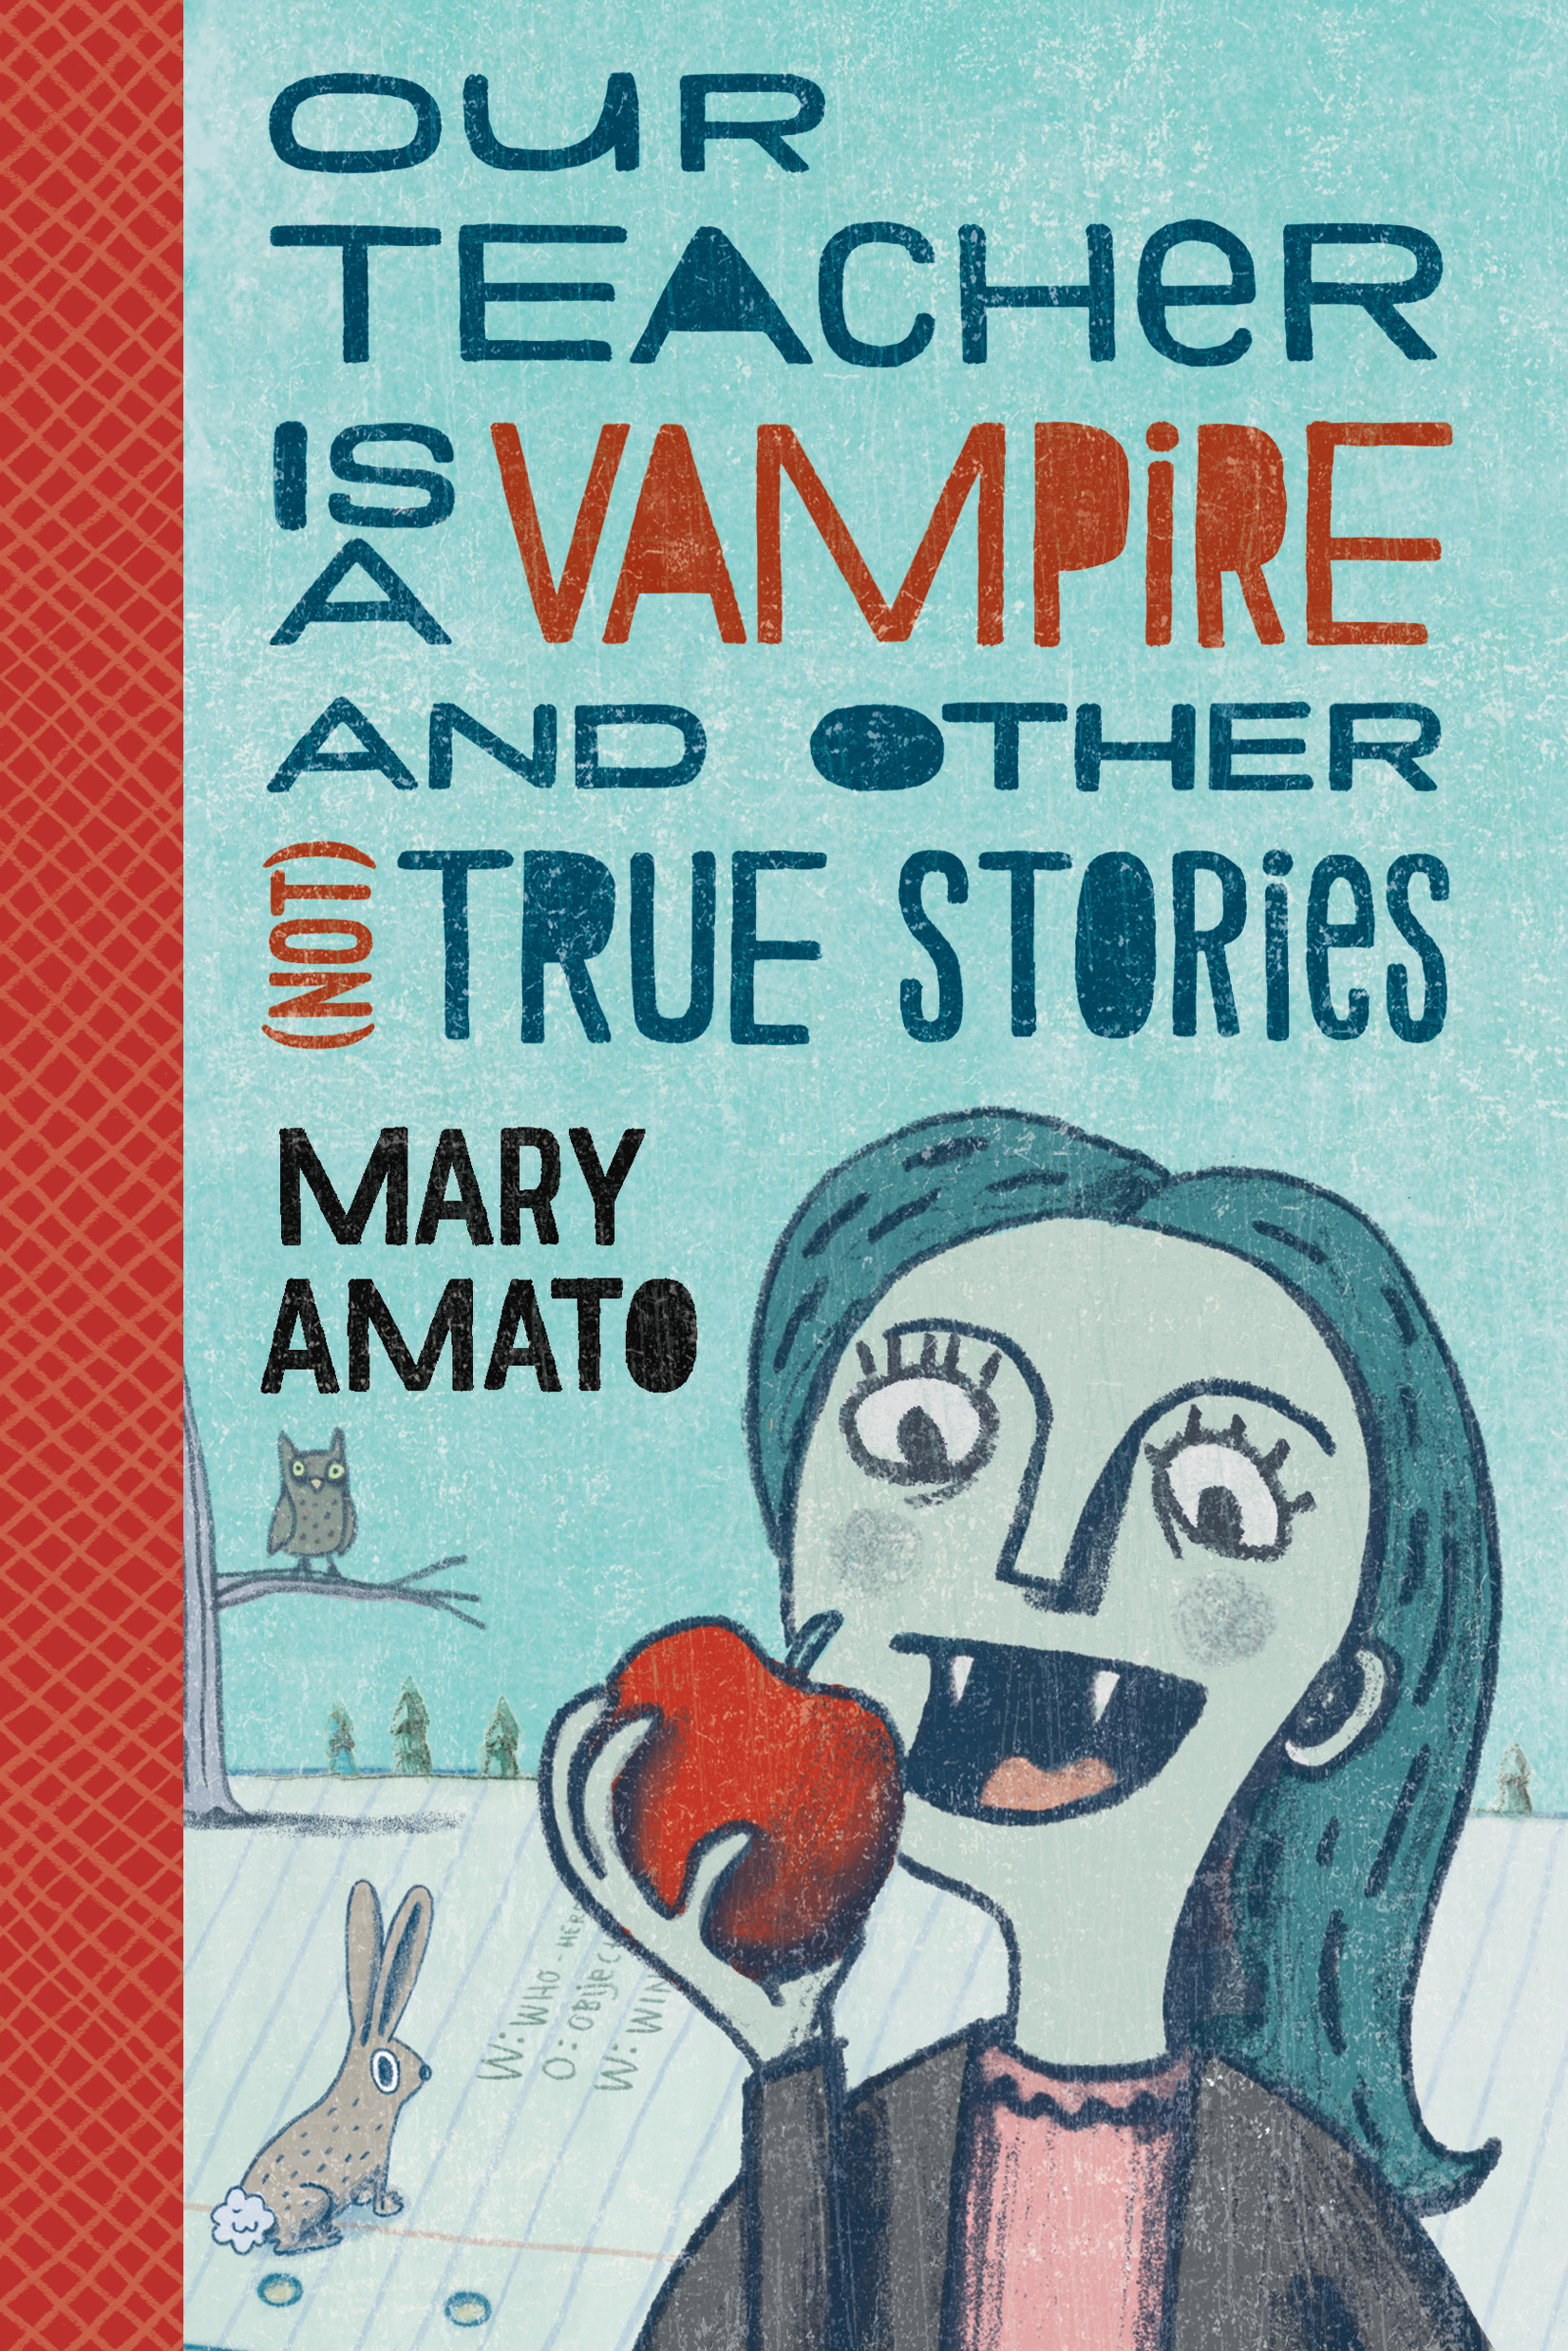 Our Teacher is a Vampire by Mary Amato